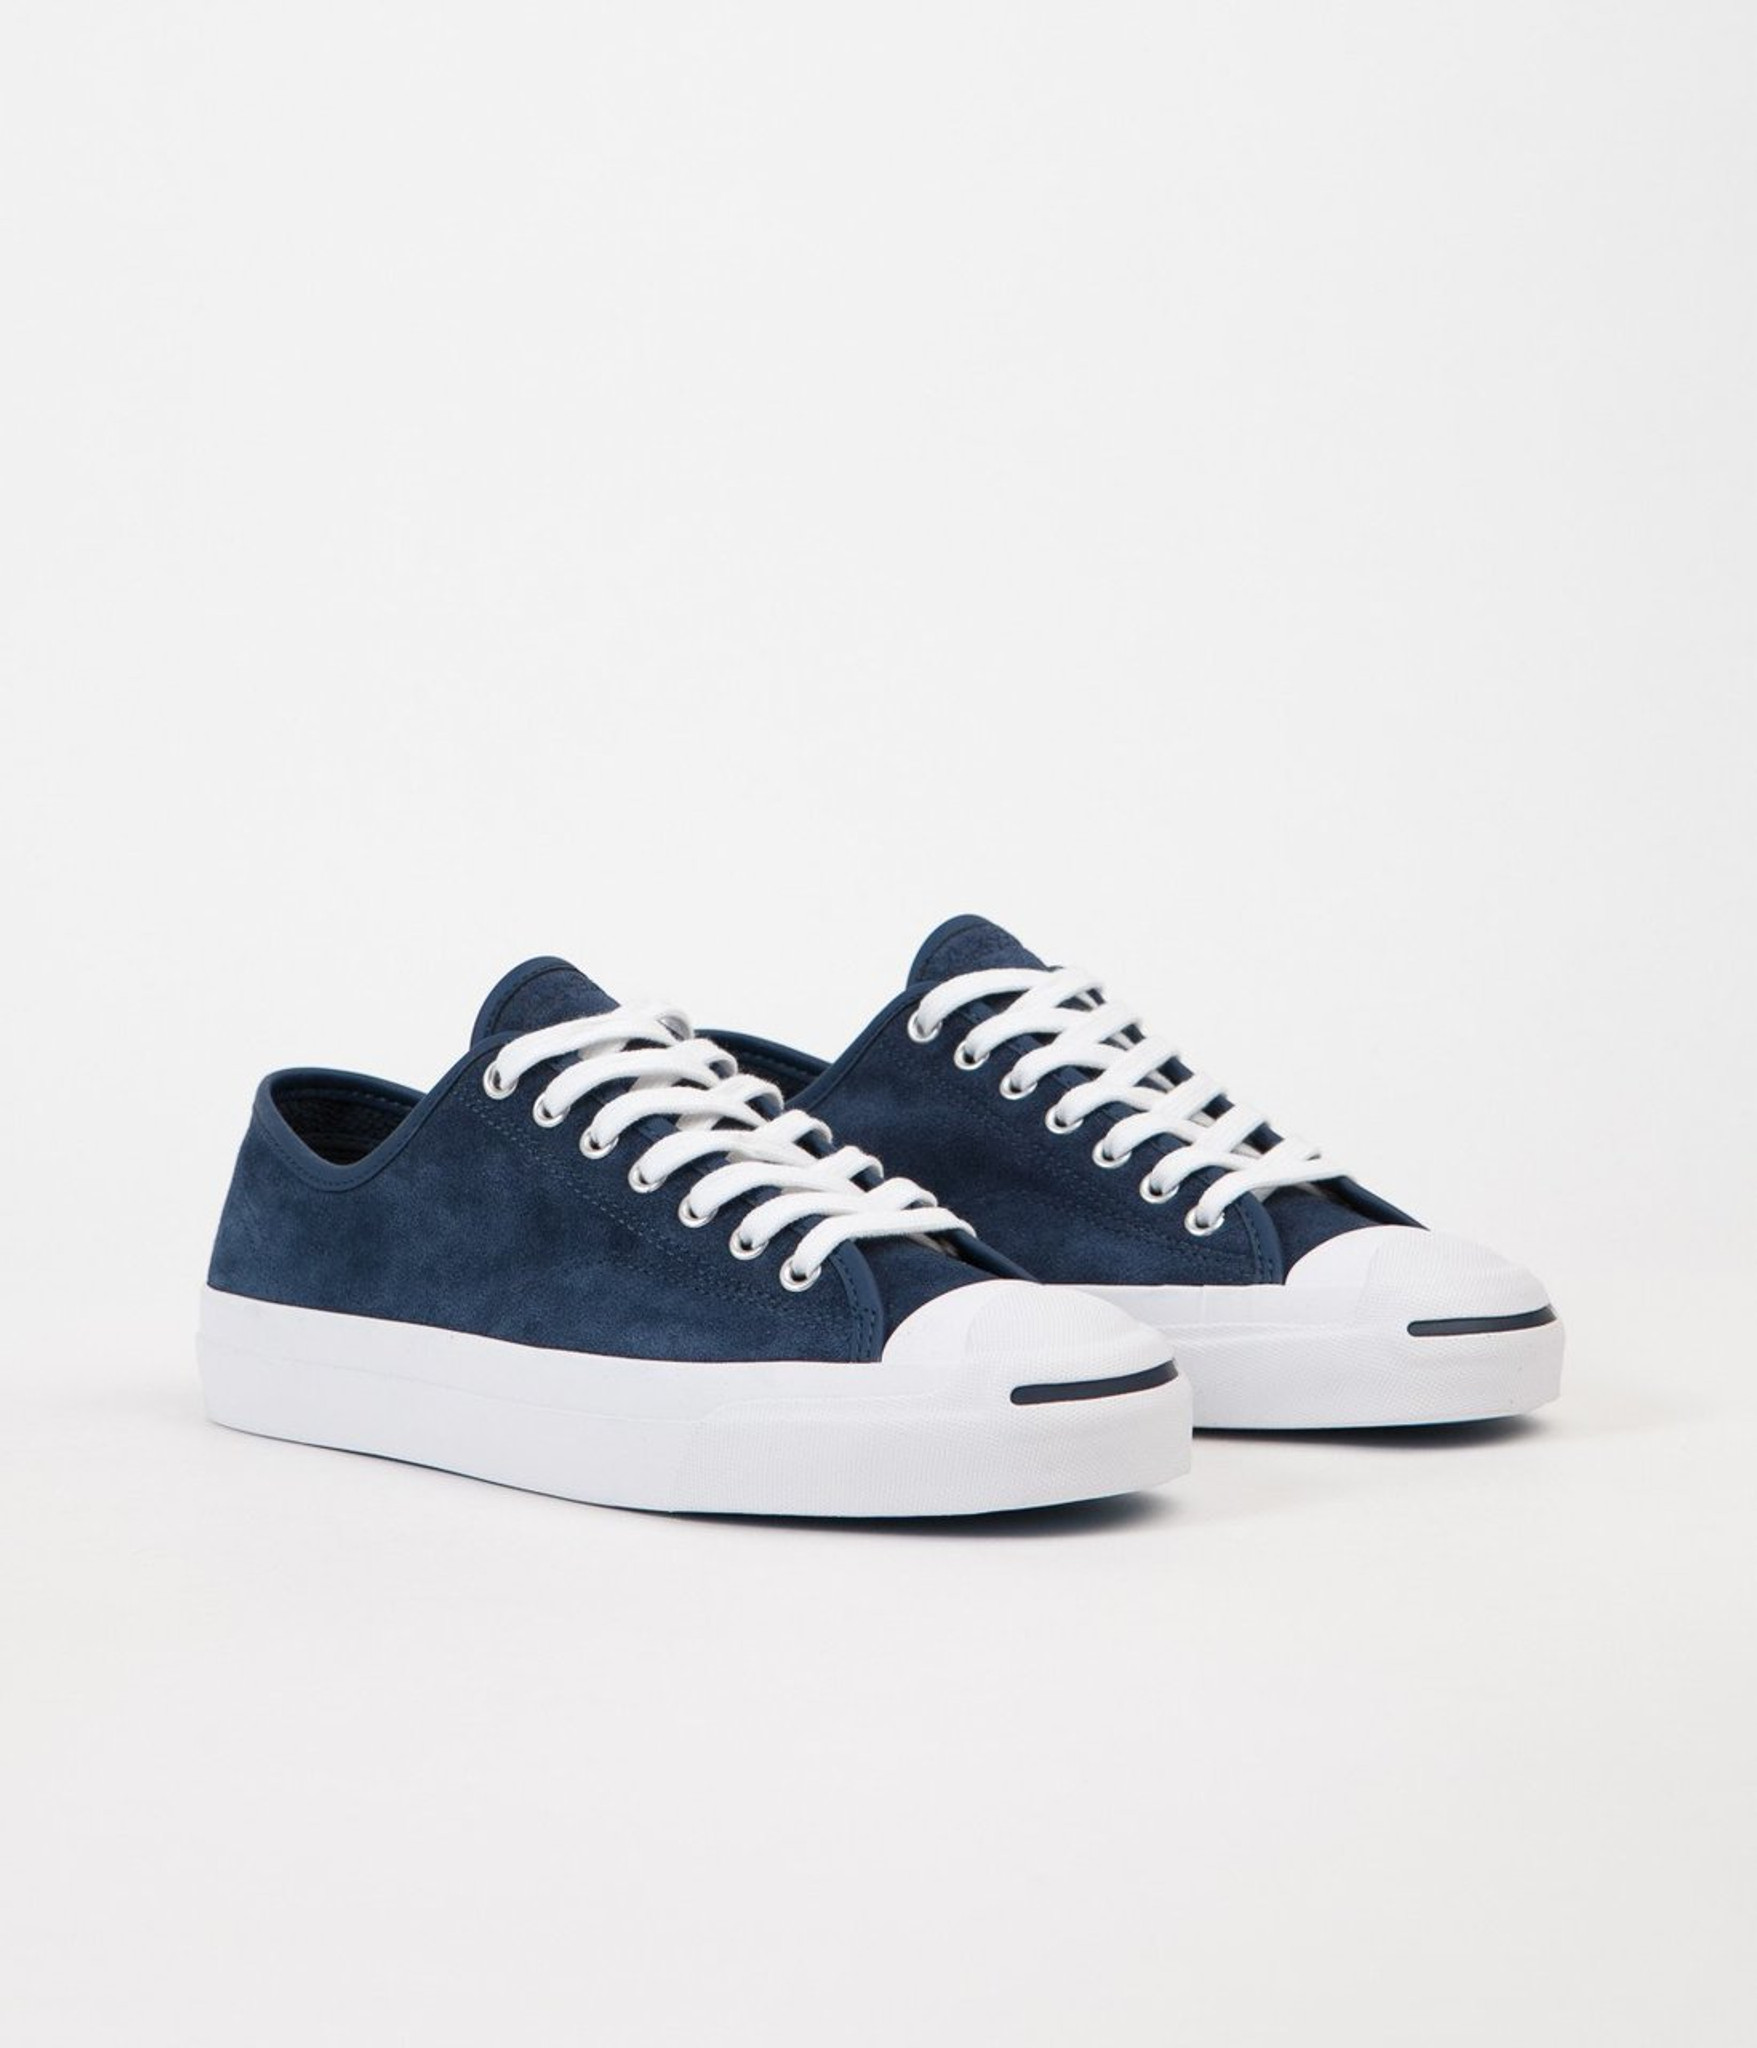 14a5235771bd ... official converse jack purcell pro x polar shoes navy free usa shipping  75b15 e6904